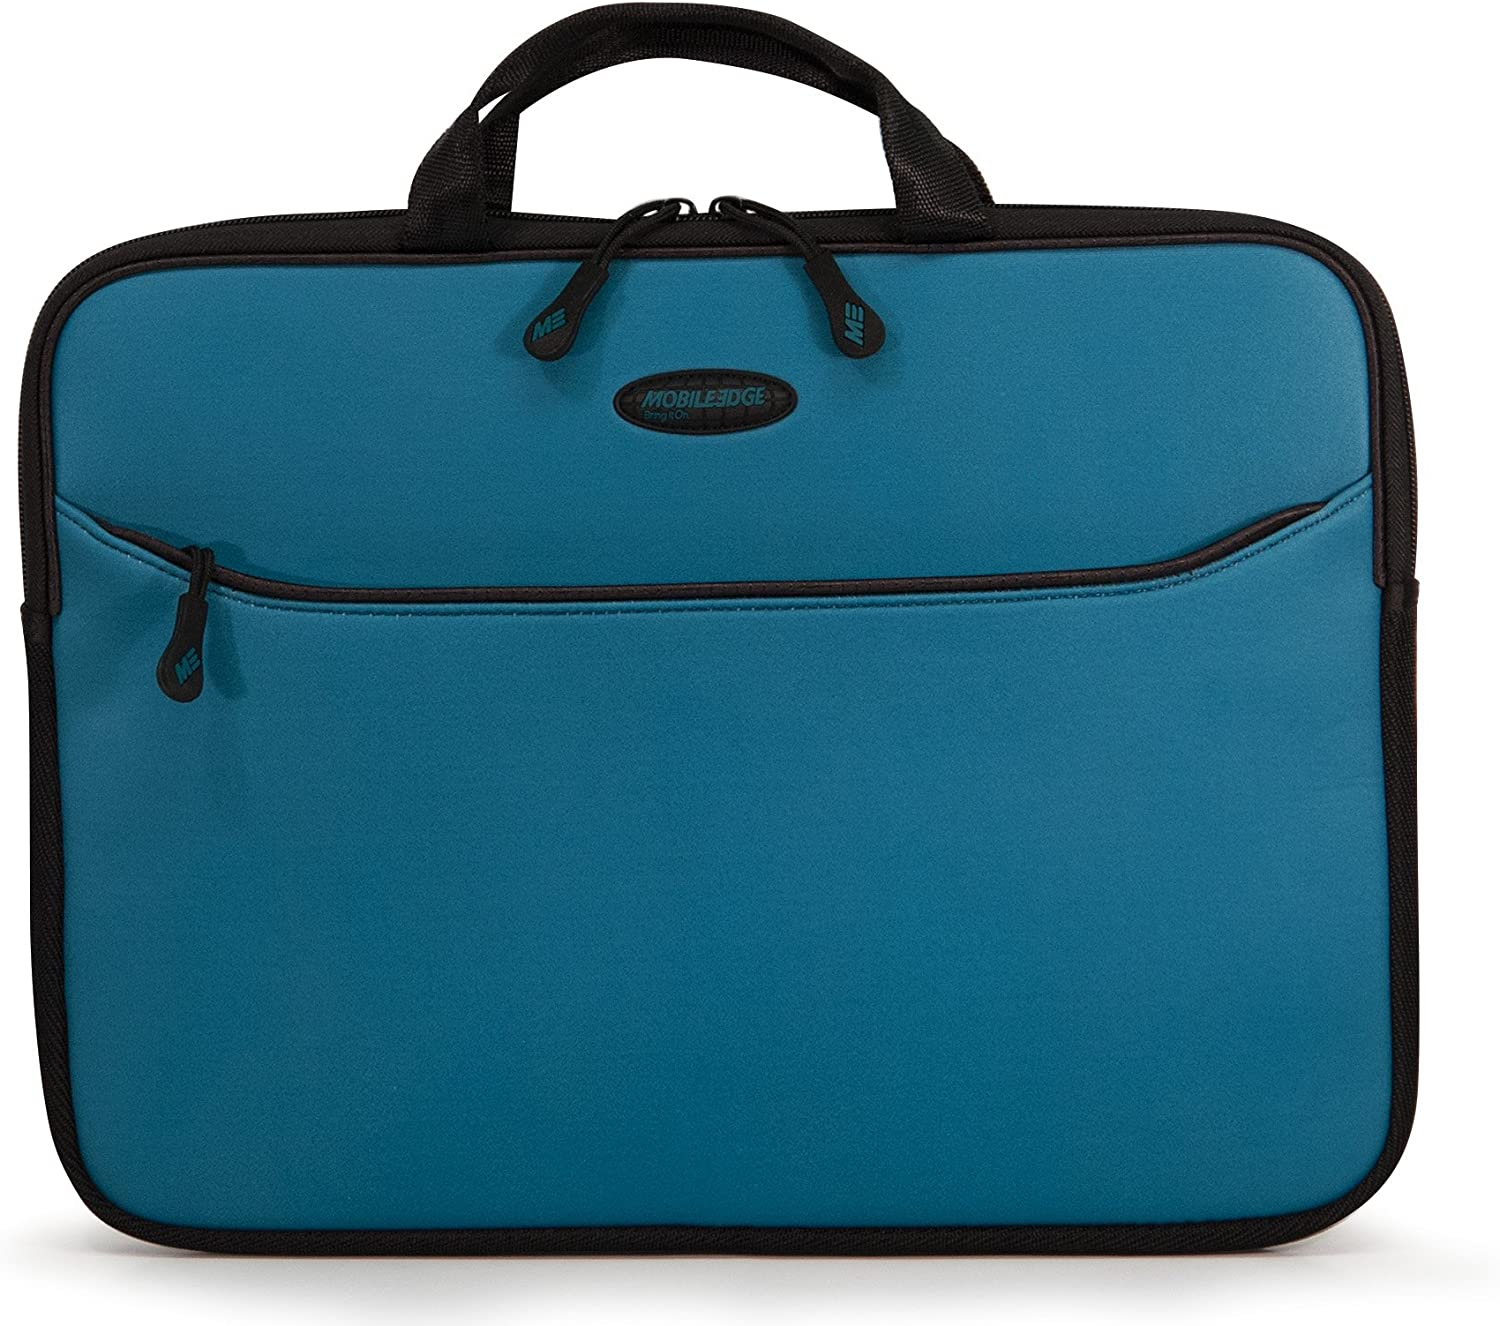 Mobile Edge SlipSuit, Cushioned EVA Laptop Sleeve w/Handle, 14 Inch Screens, Large Zippered Exterior Pocket, Water-Resistant, Teal MESS9-14